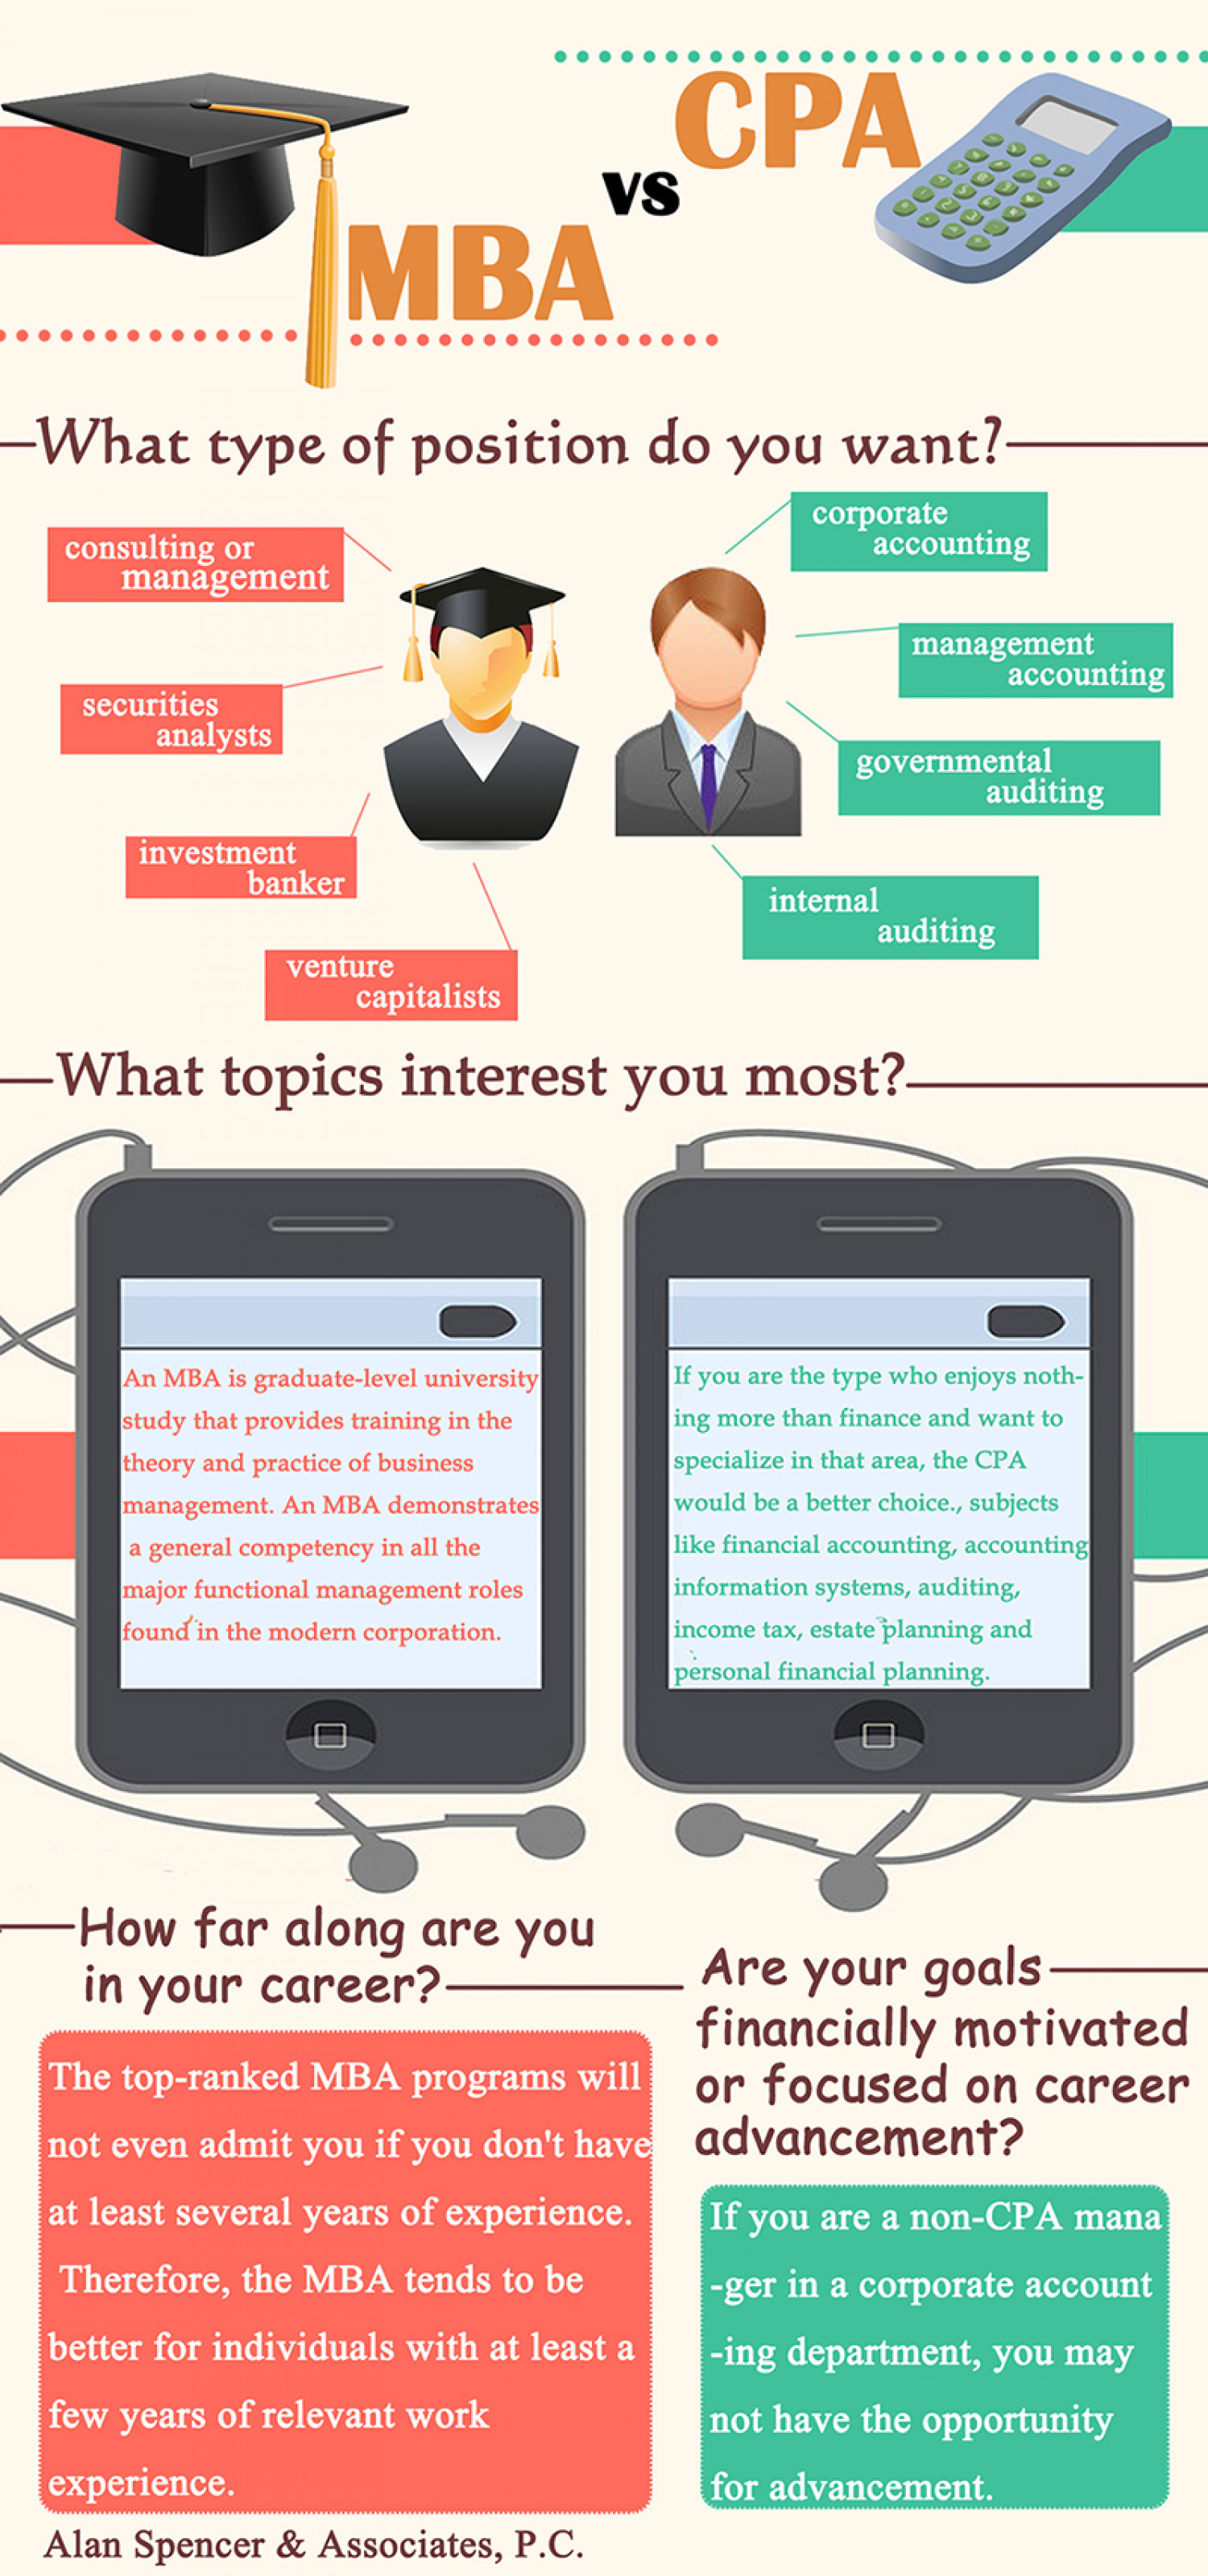 MBA or CPA: Which Is Best for Finance Professionals? Infographic